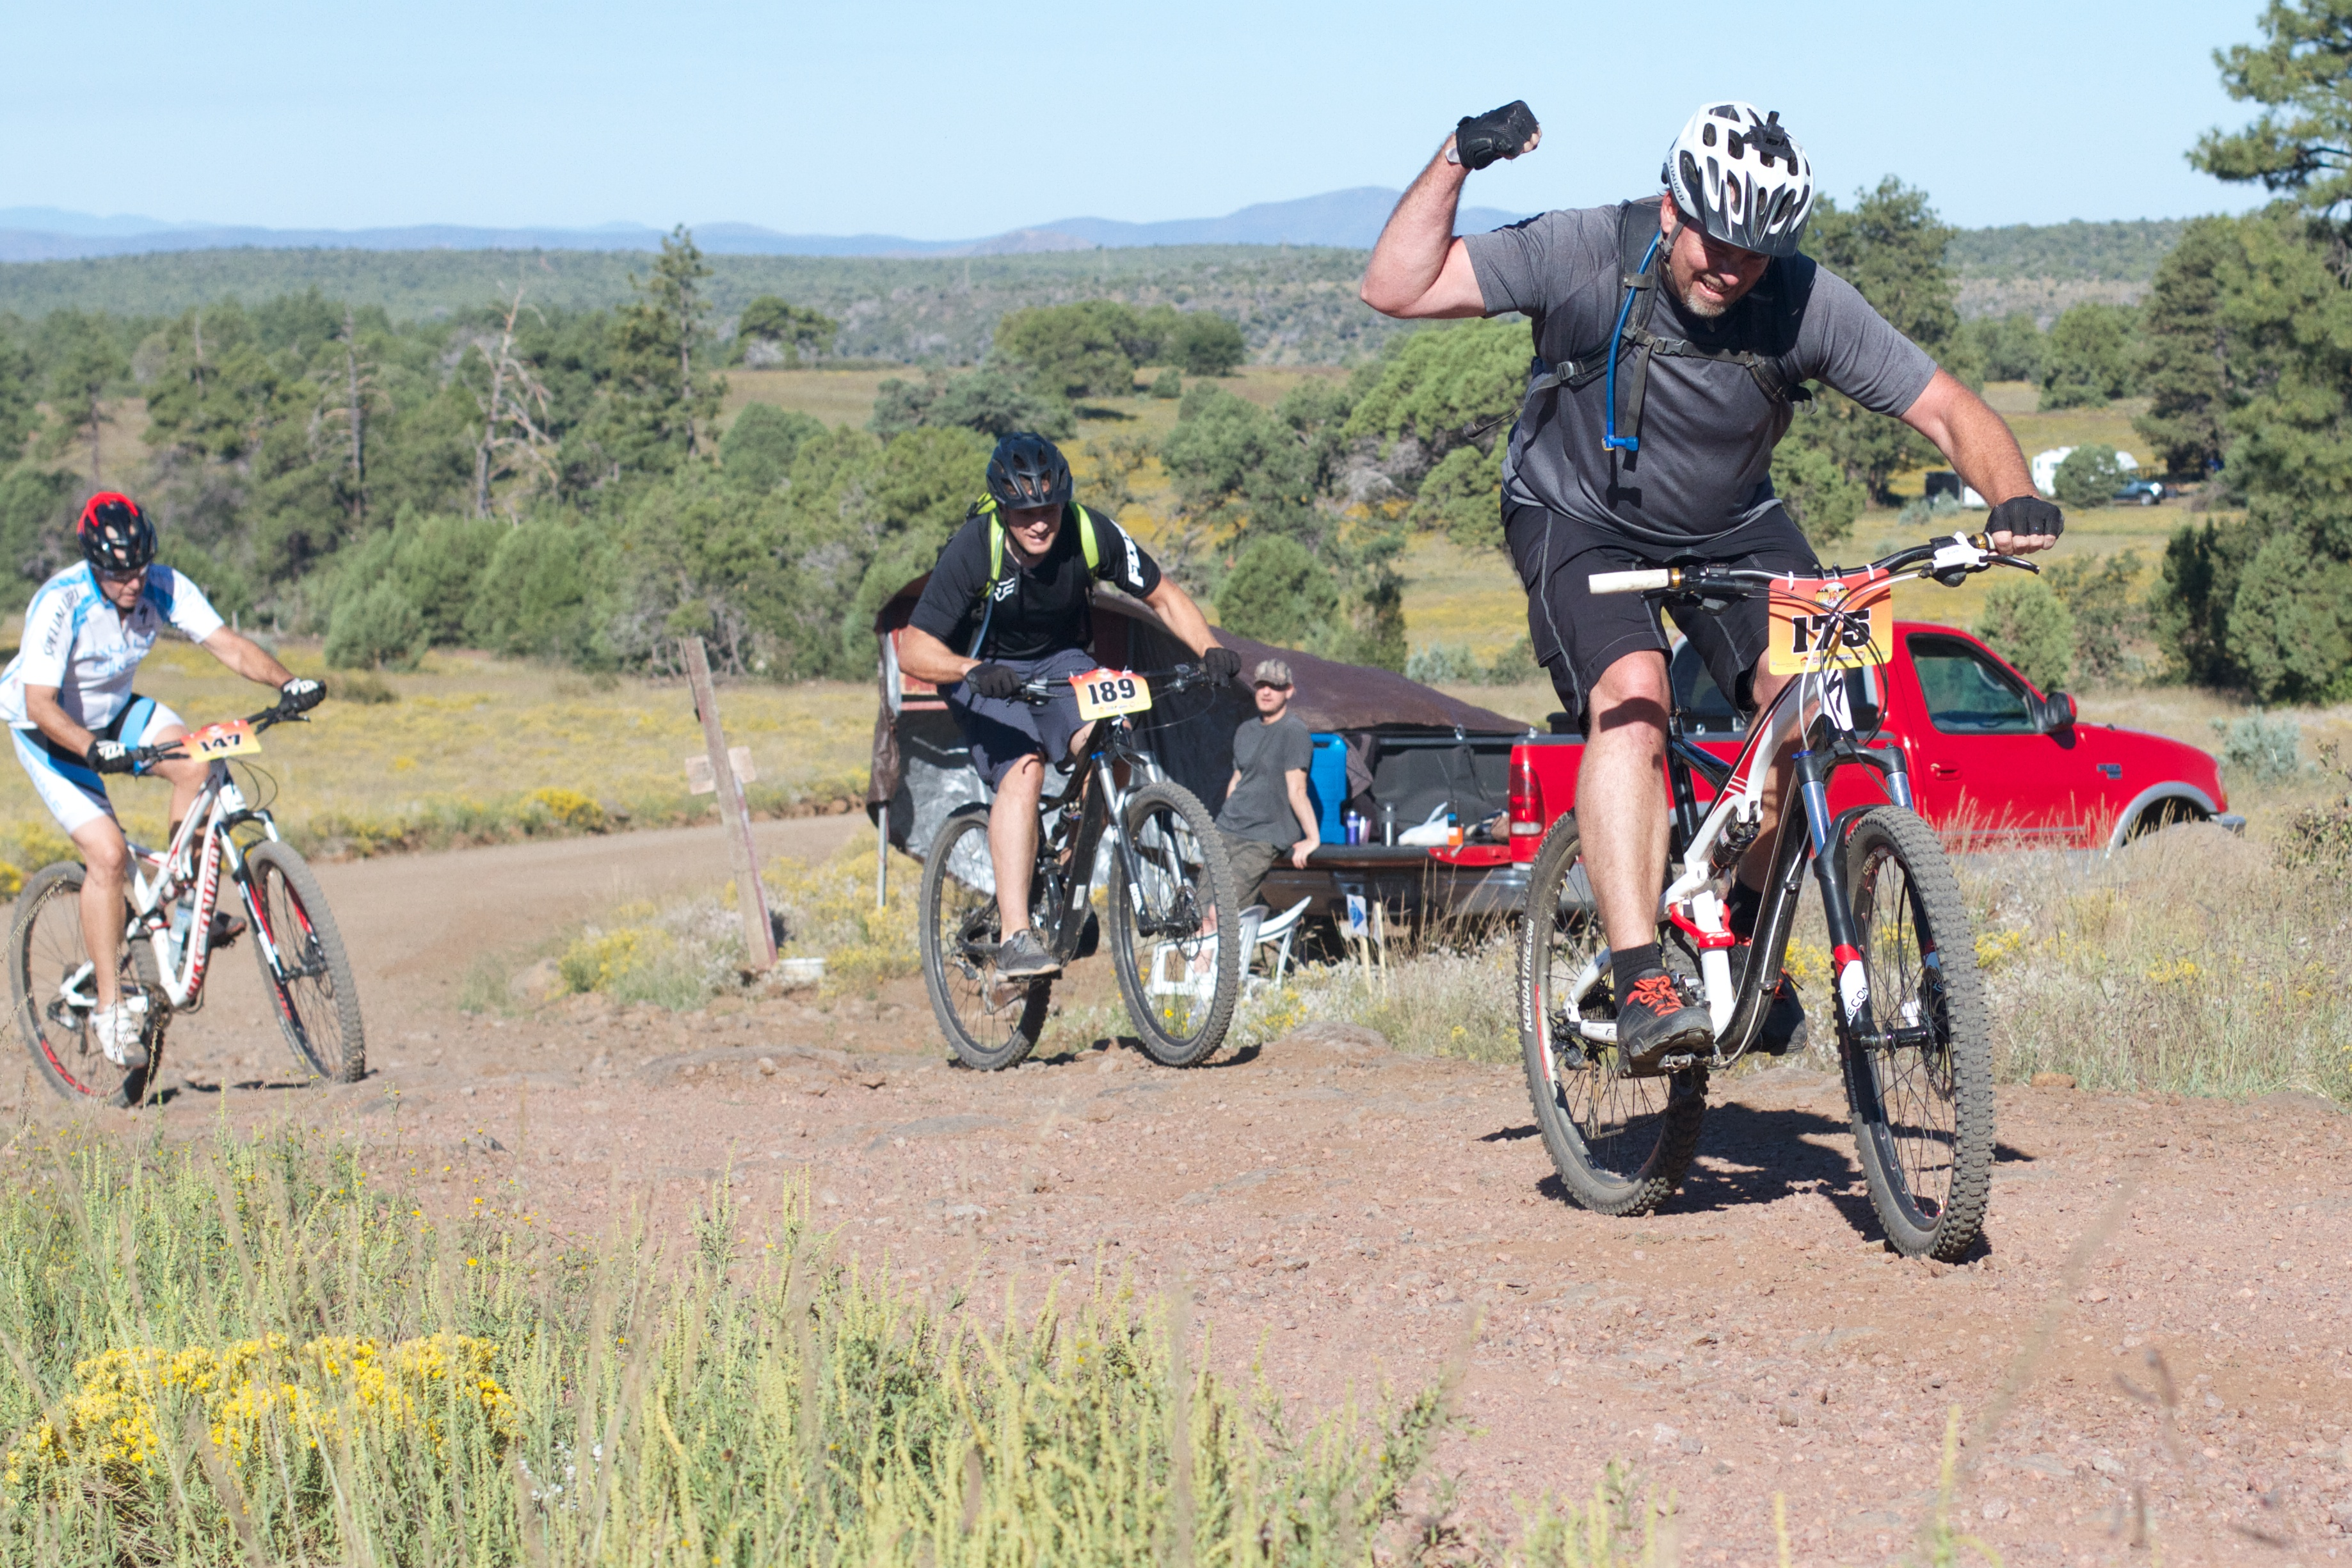 Rider147 ride 189 and rider 175 fire on the rim 2016 photo